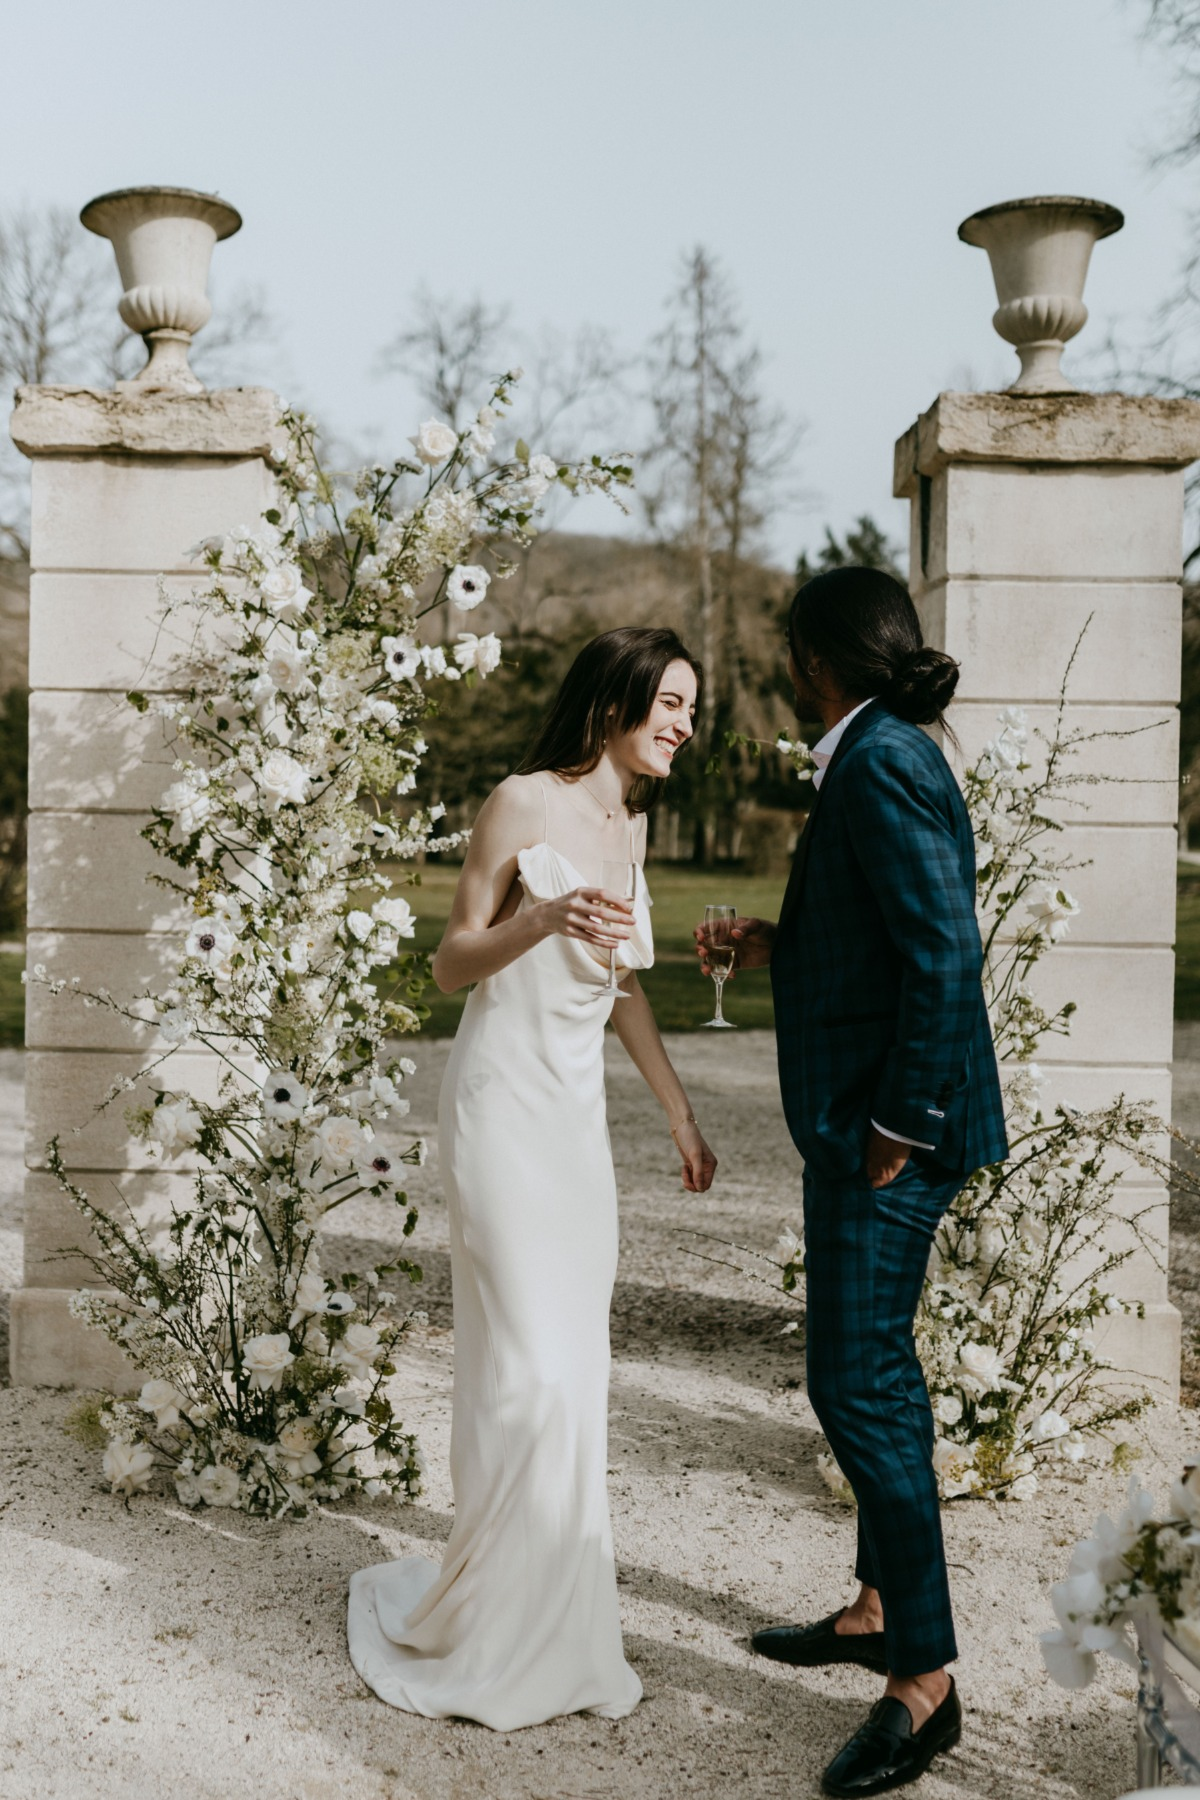 Minimalist Inspiration Shoot At A French Château That Makes Elegance Look Effortless